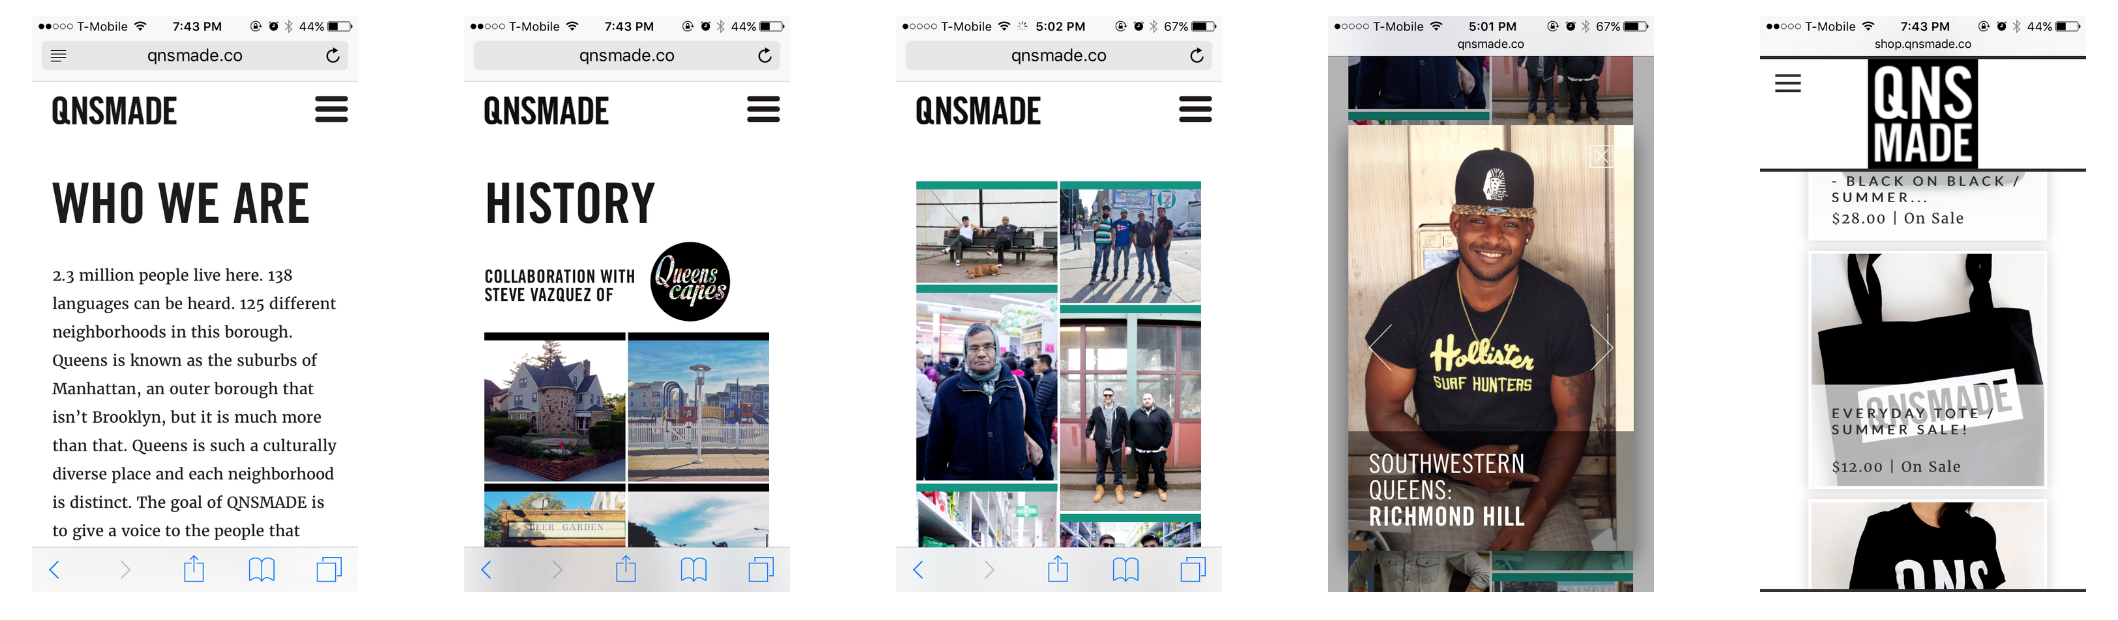 QNSMADE.CO: The mobile responsive website